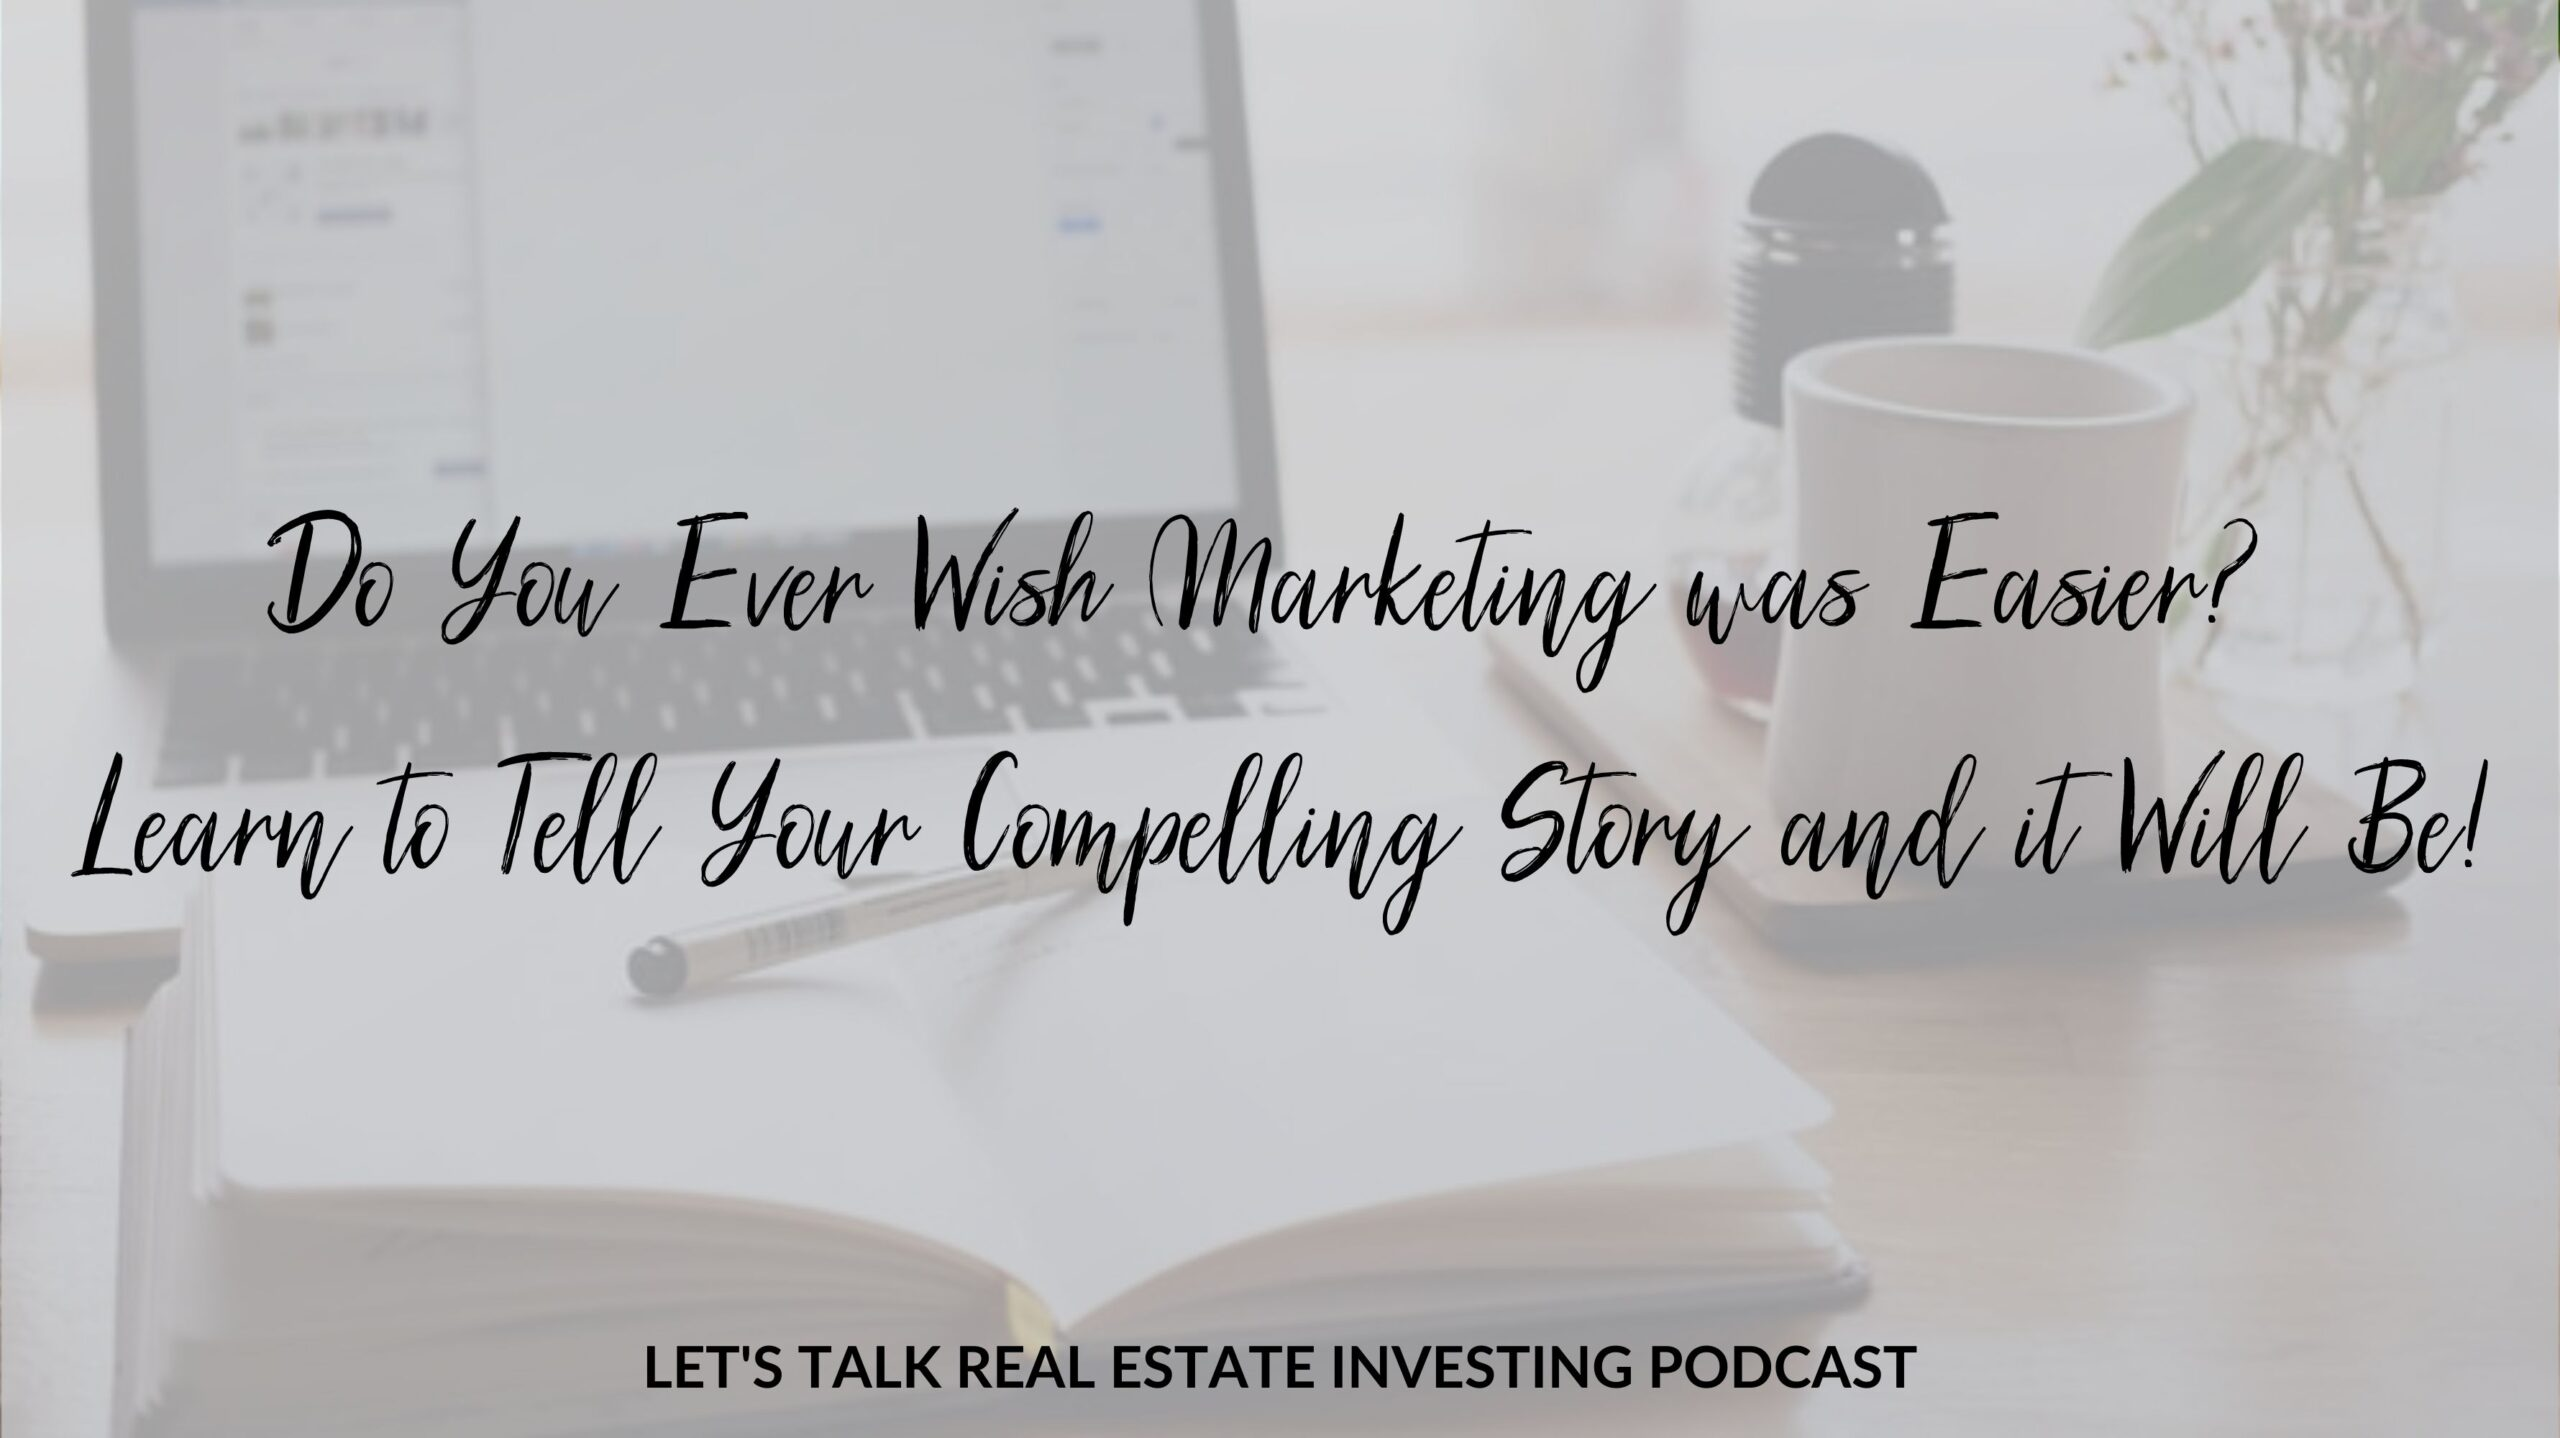 Do You Ever Wish Marketing was Easier? Learn to Tell Your Compelling Story and it Will Be!